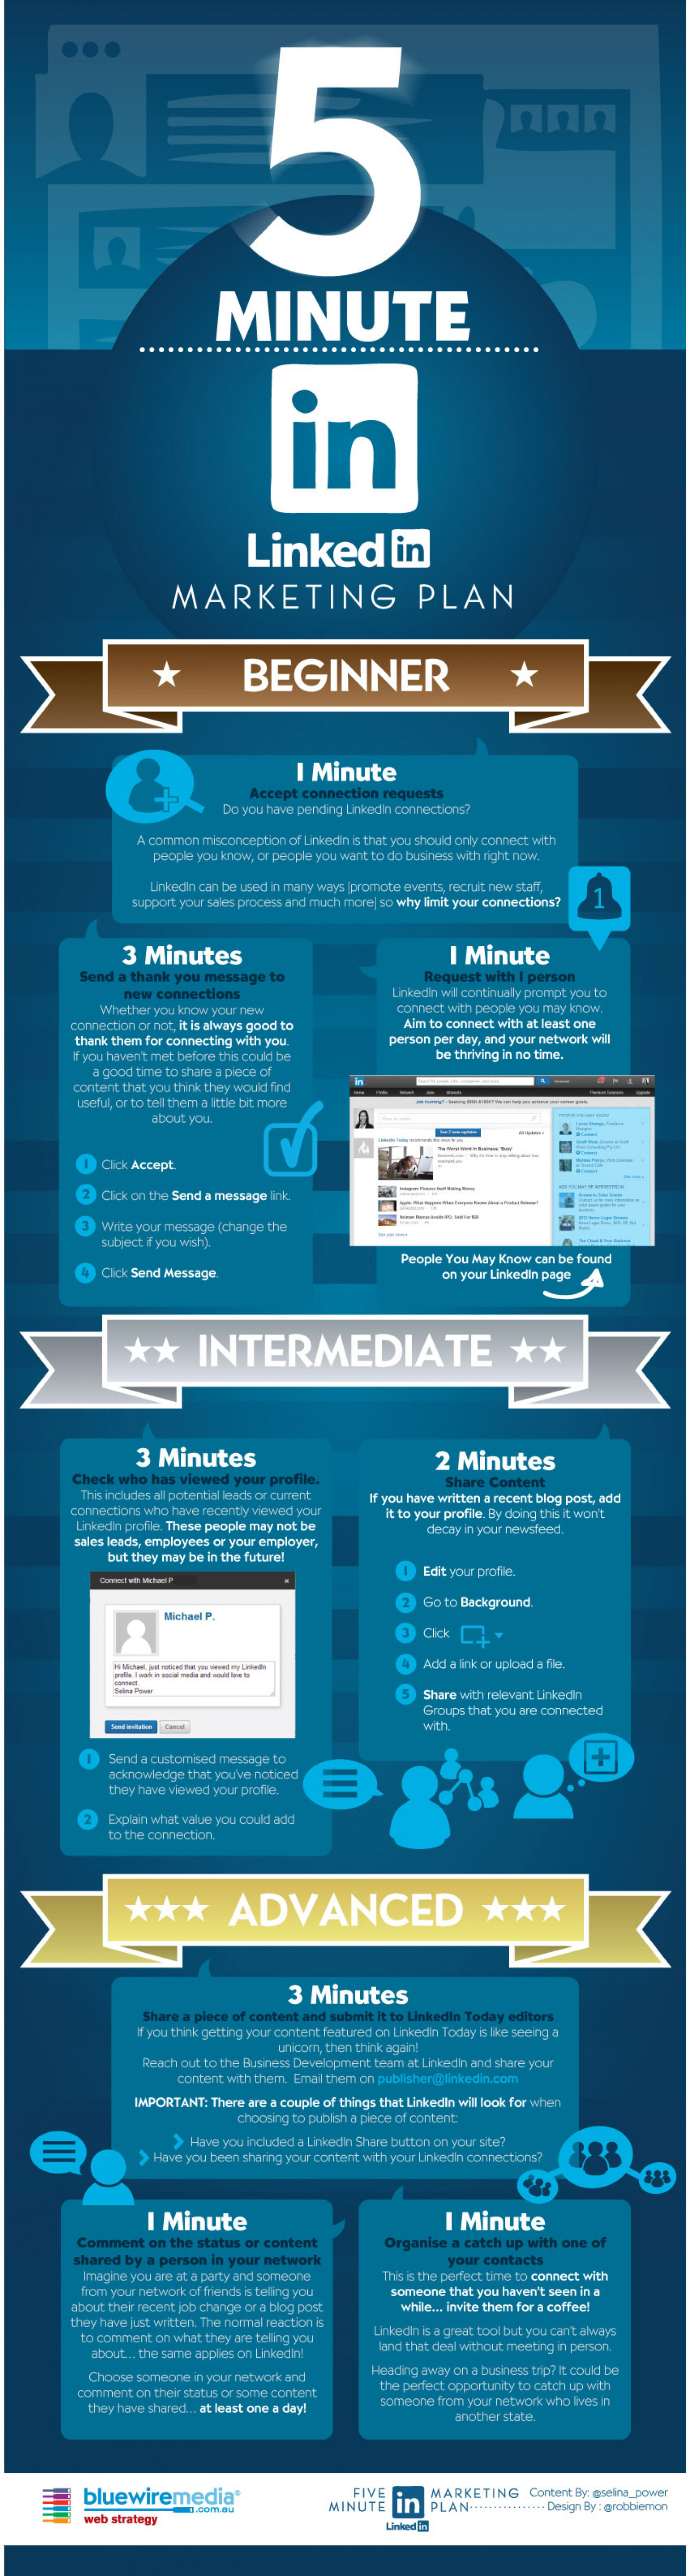 LinkedIn 5 Minute Marketing Plan Infographic